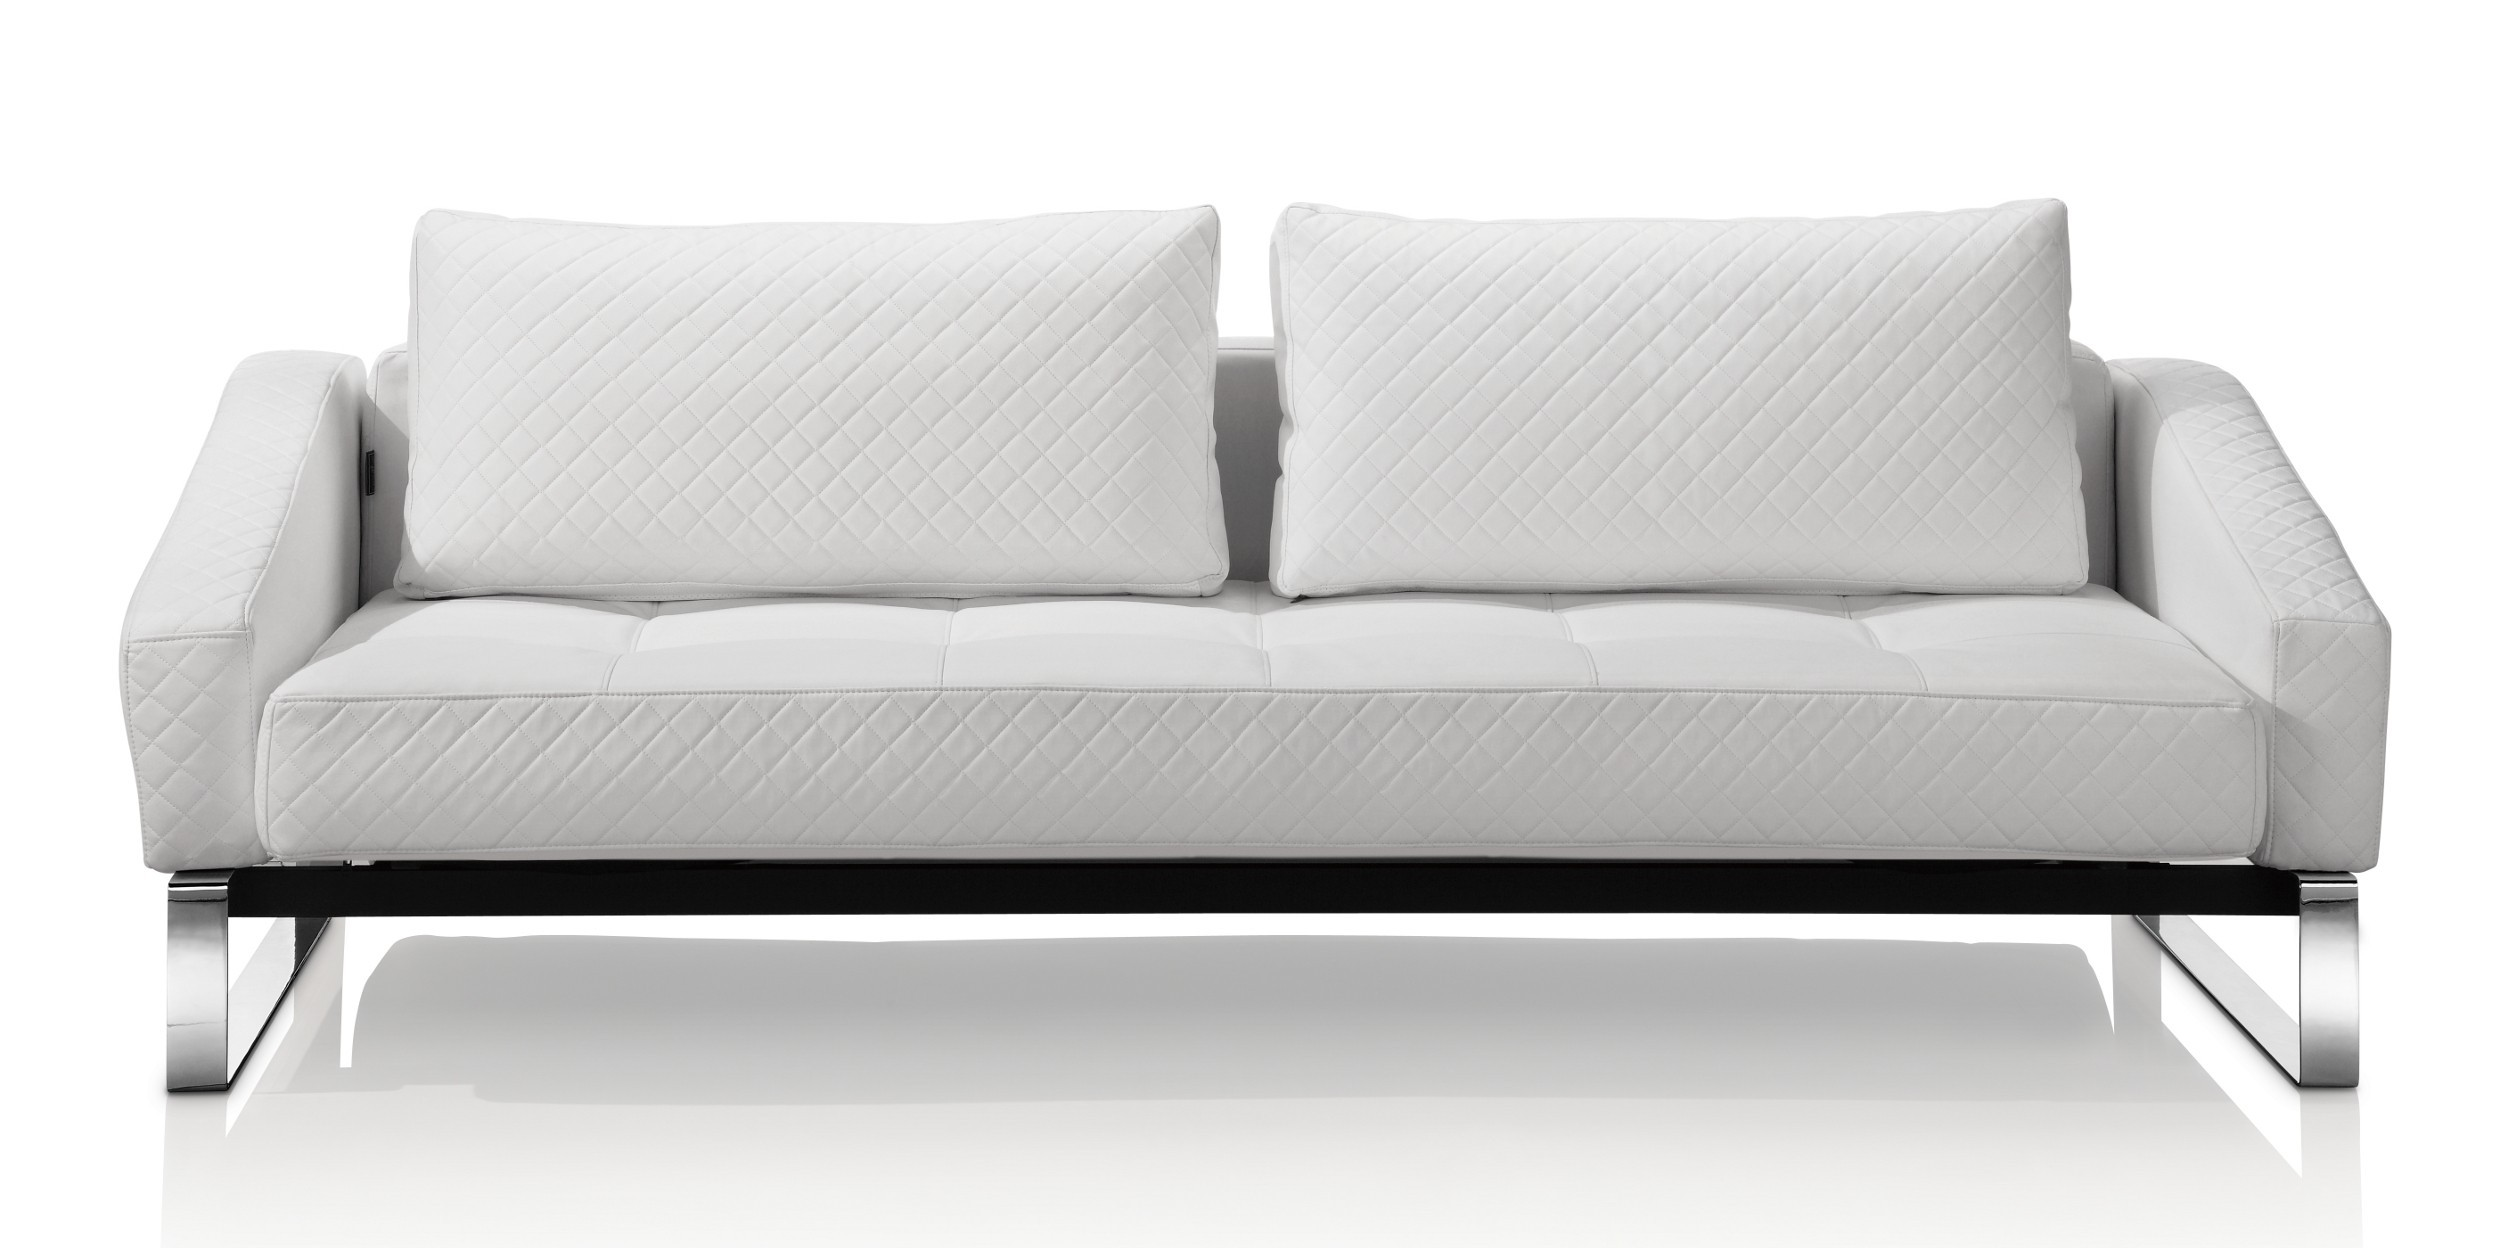 Best White Fabric Sofa 21 On Sofas and Couches Set with White Fabric Sofa